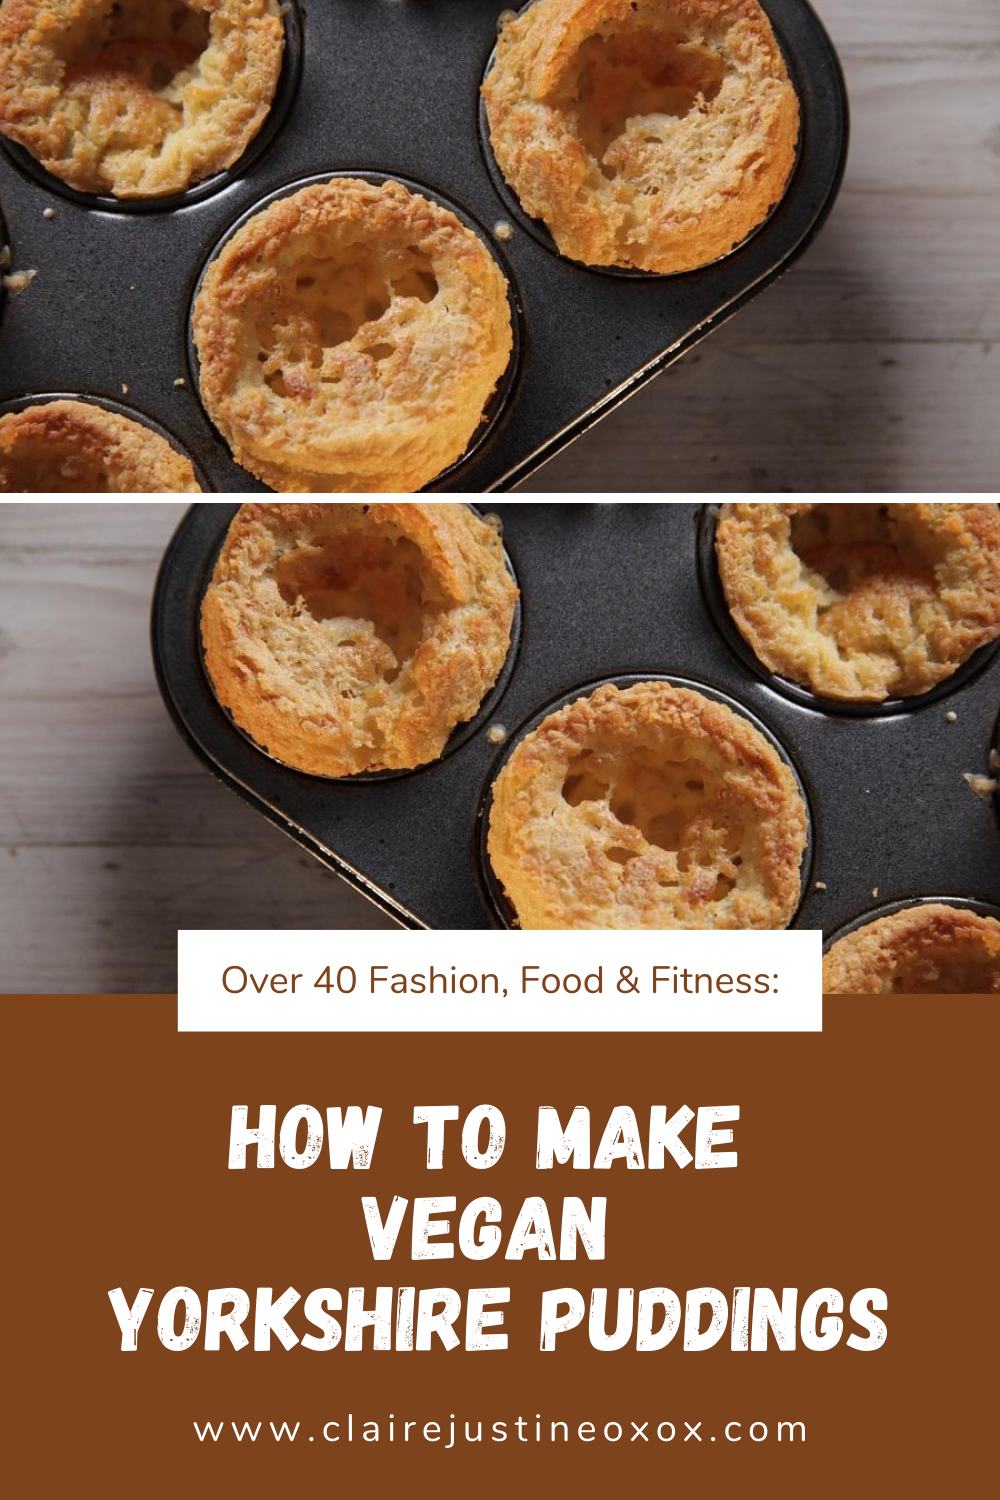 How To Make Vegan Yorkshire Puddings.